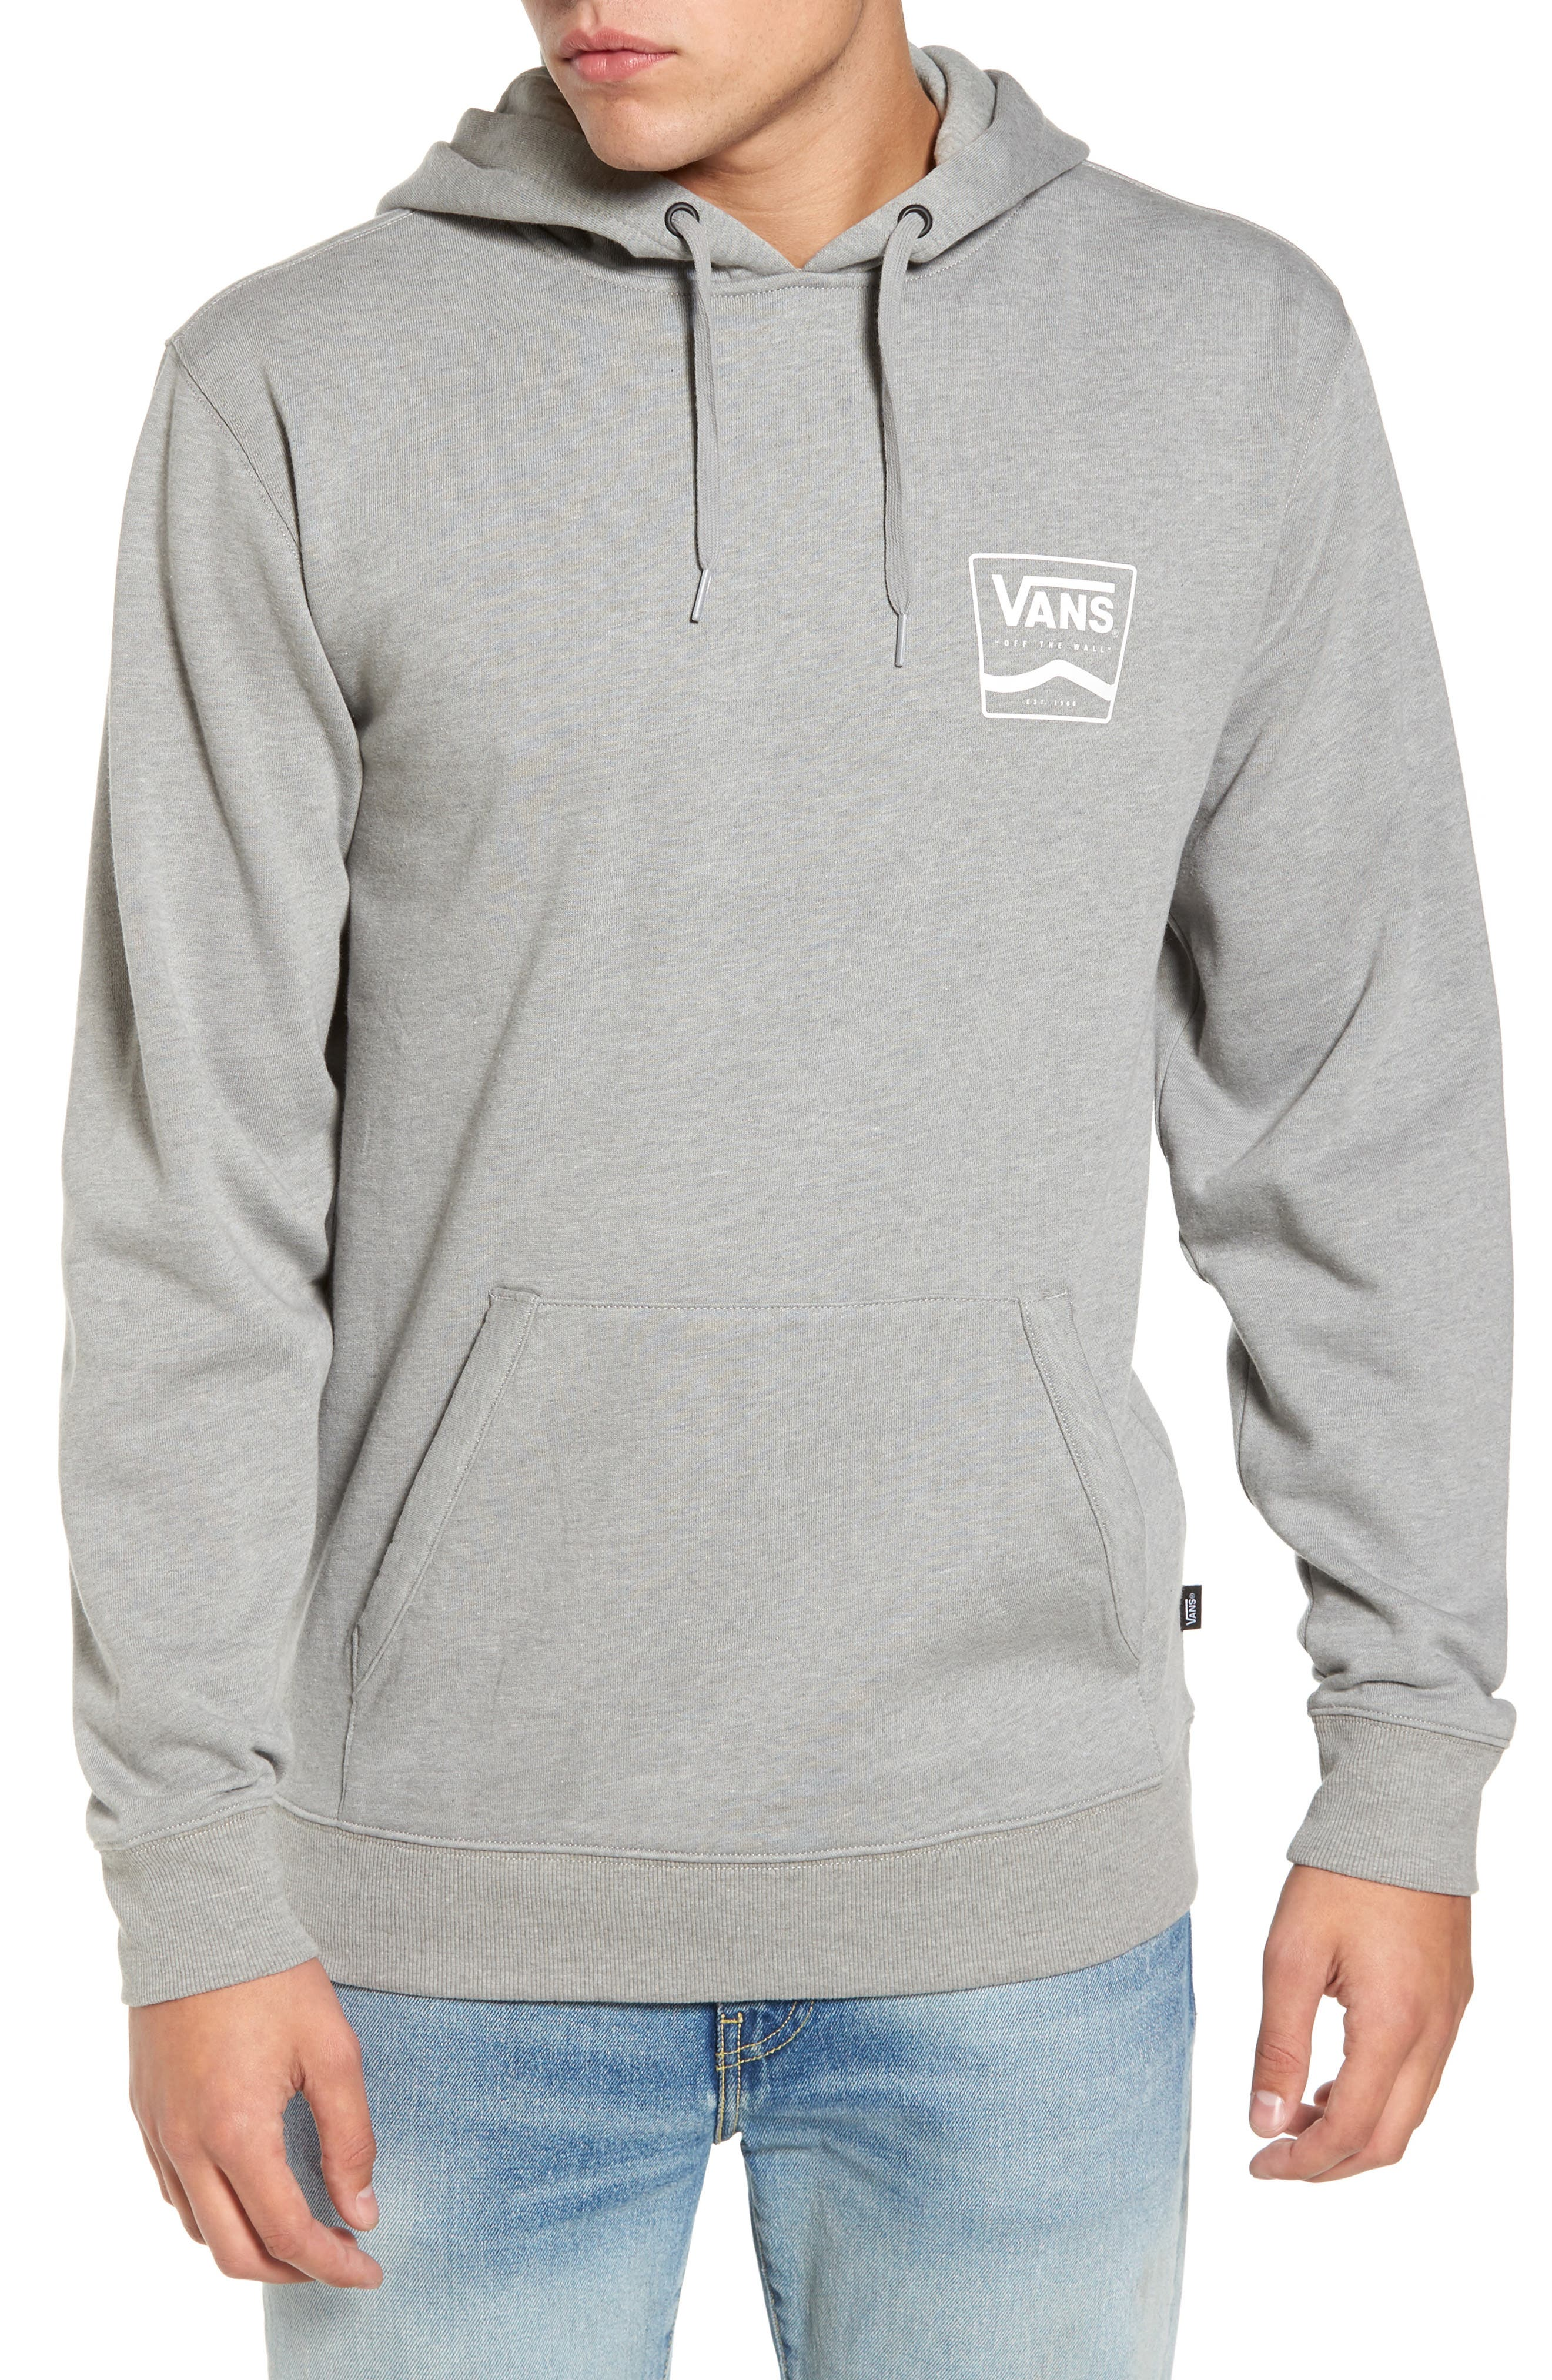 Vans Side Striped II Hoodie